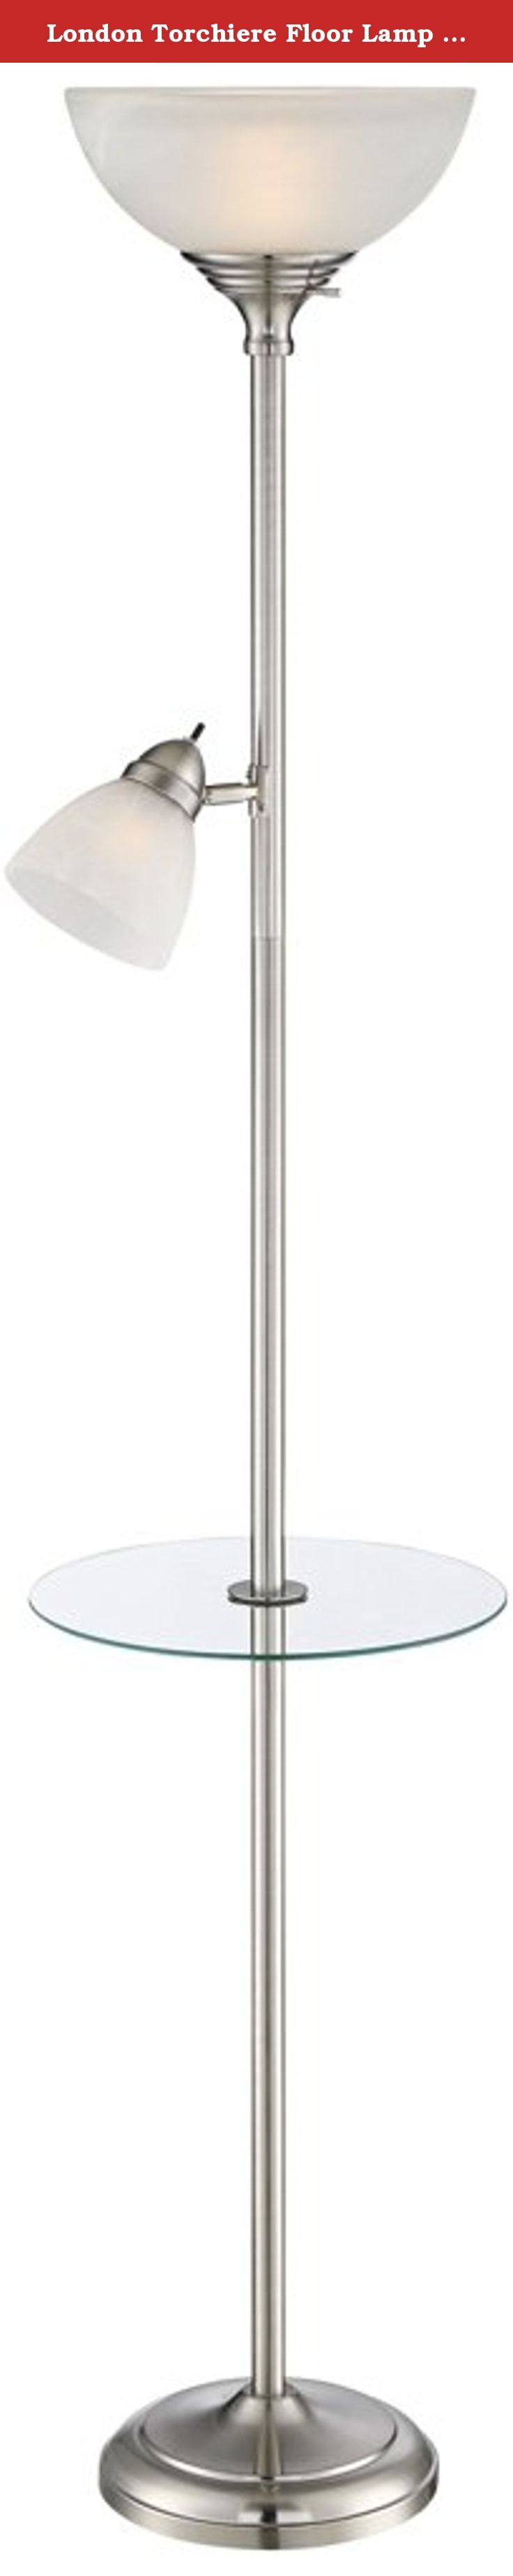 London Torchiere Floor Lamp with Table and Reading Light. The perfect choice next to an armchair, sofa or bedside, this metal torchiere floor lamp features an uplight as well as a side light. A clear tempered glass table is built into the column for utmost convenience. In a brushed nickel finish. - 2-light torchiere floor lamp with glass table. - Metal construction with brushed nickel finish. - Separate on/off switches on neck and lamp head. - Torchiere takes 150 watt bulb; side light…